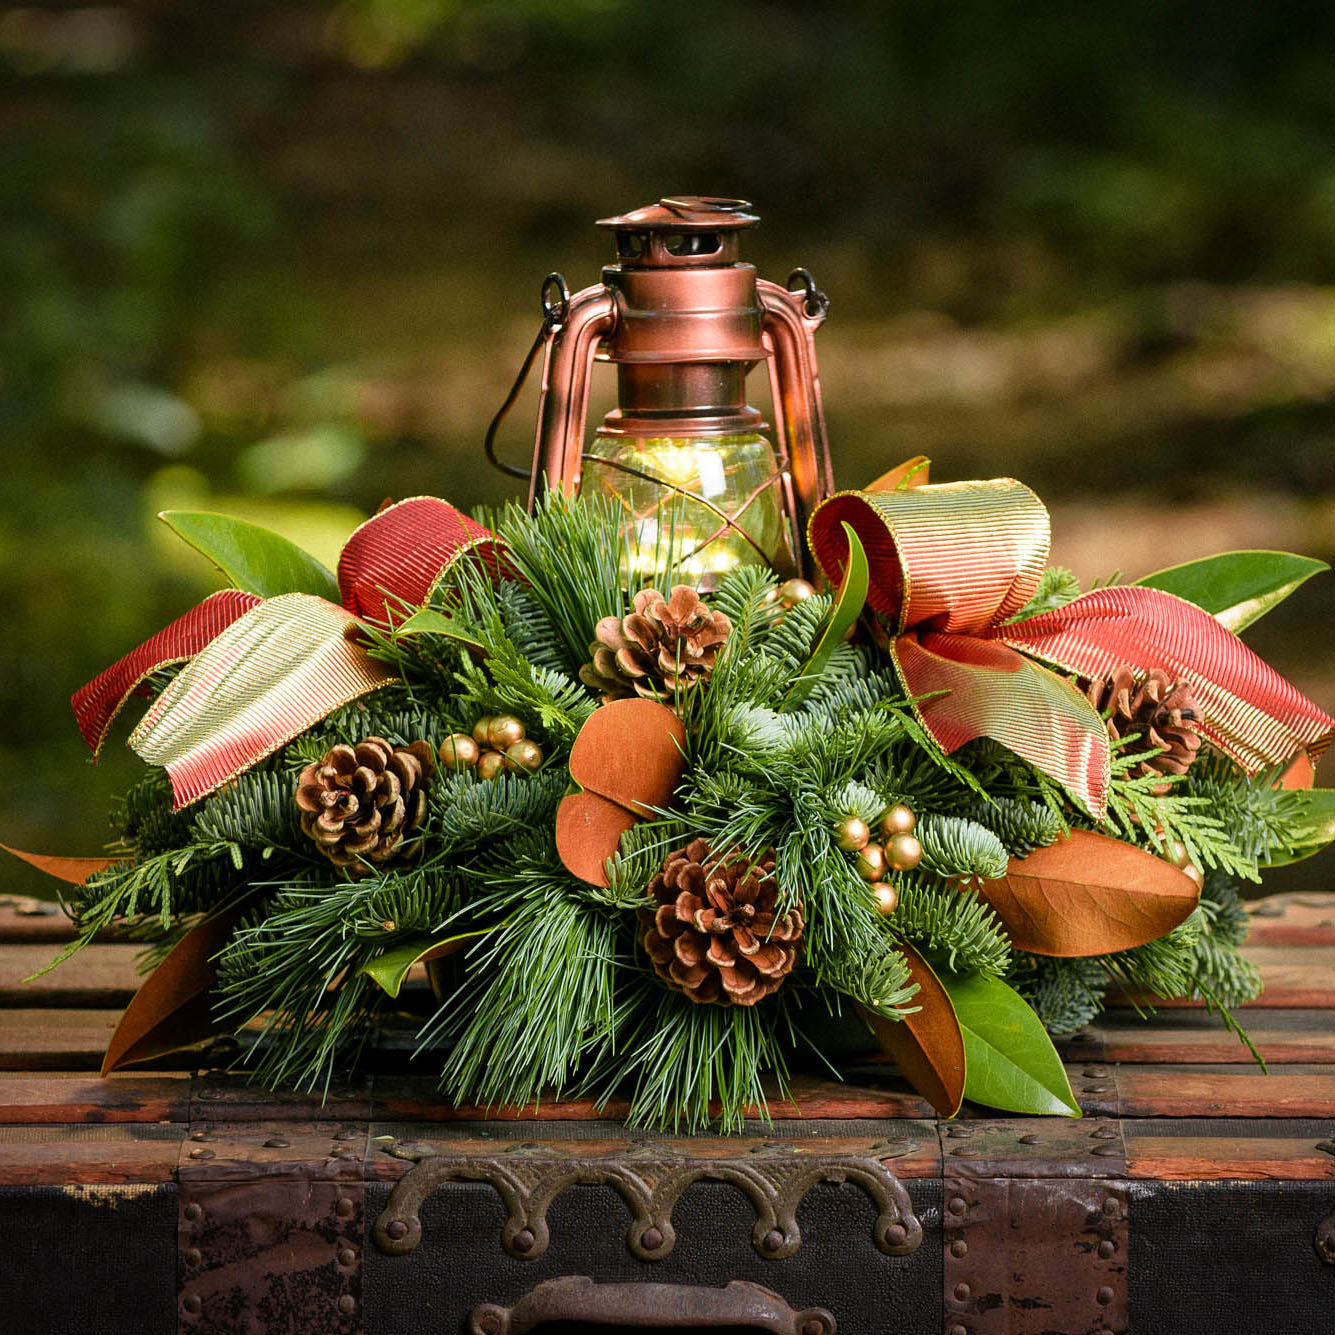 Centerpiece with magnolia leaves, pine cones, gold ornaments and a shimmery red-gold bow and a bronze LED lantern up close